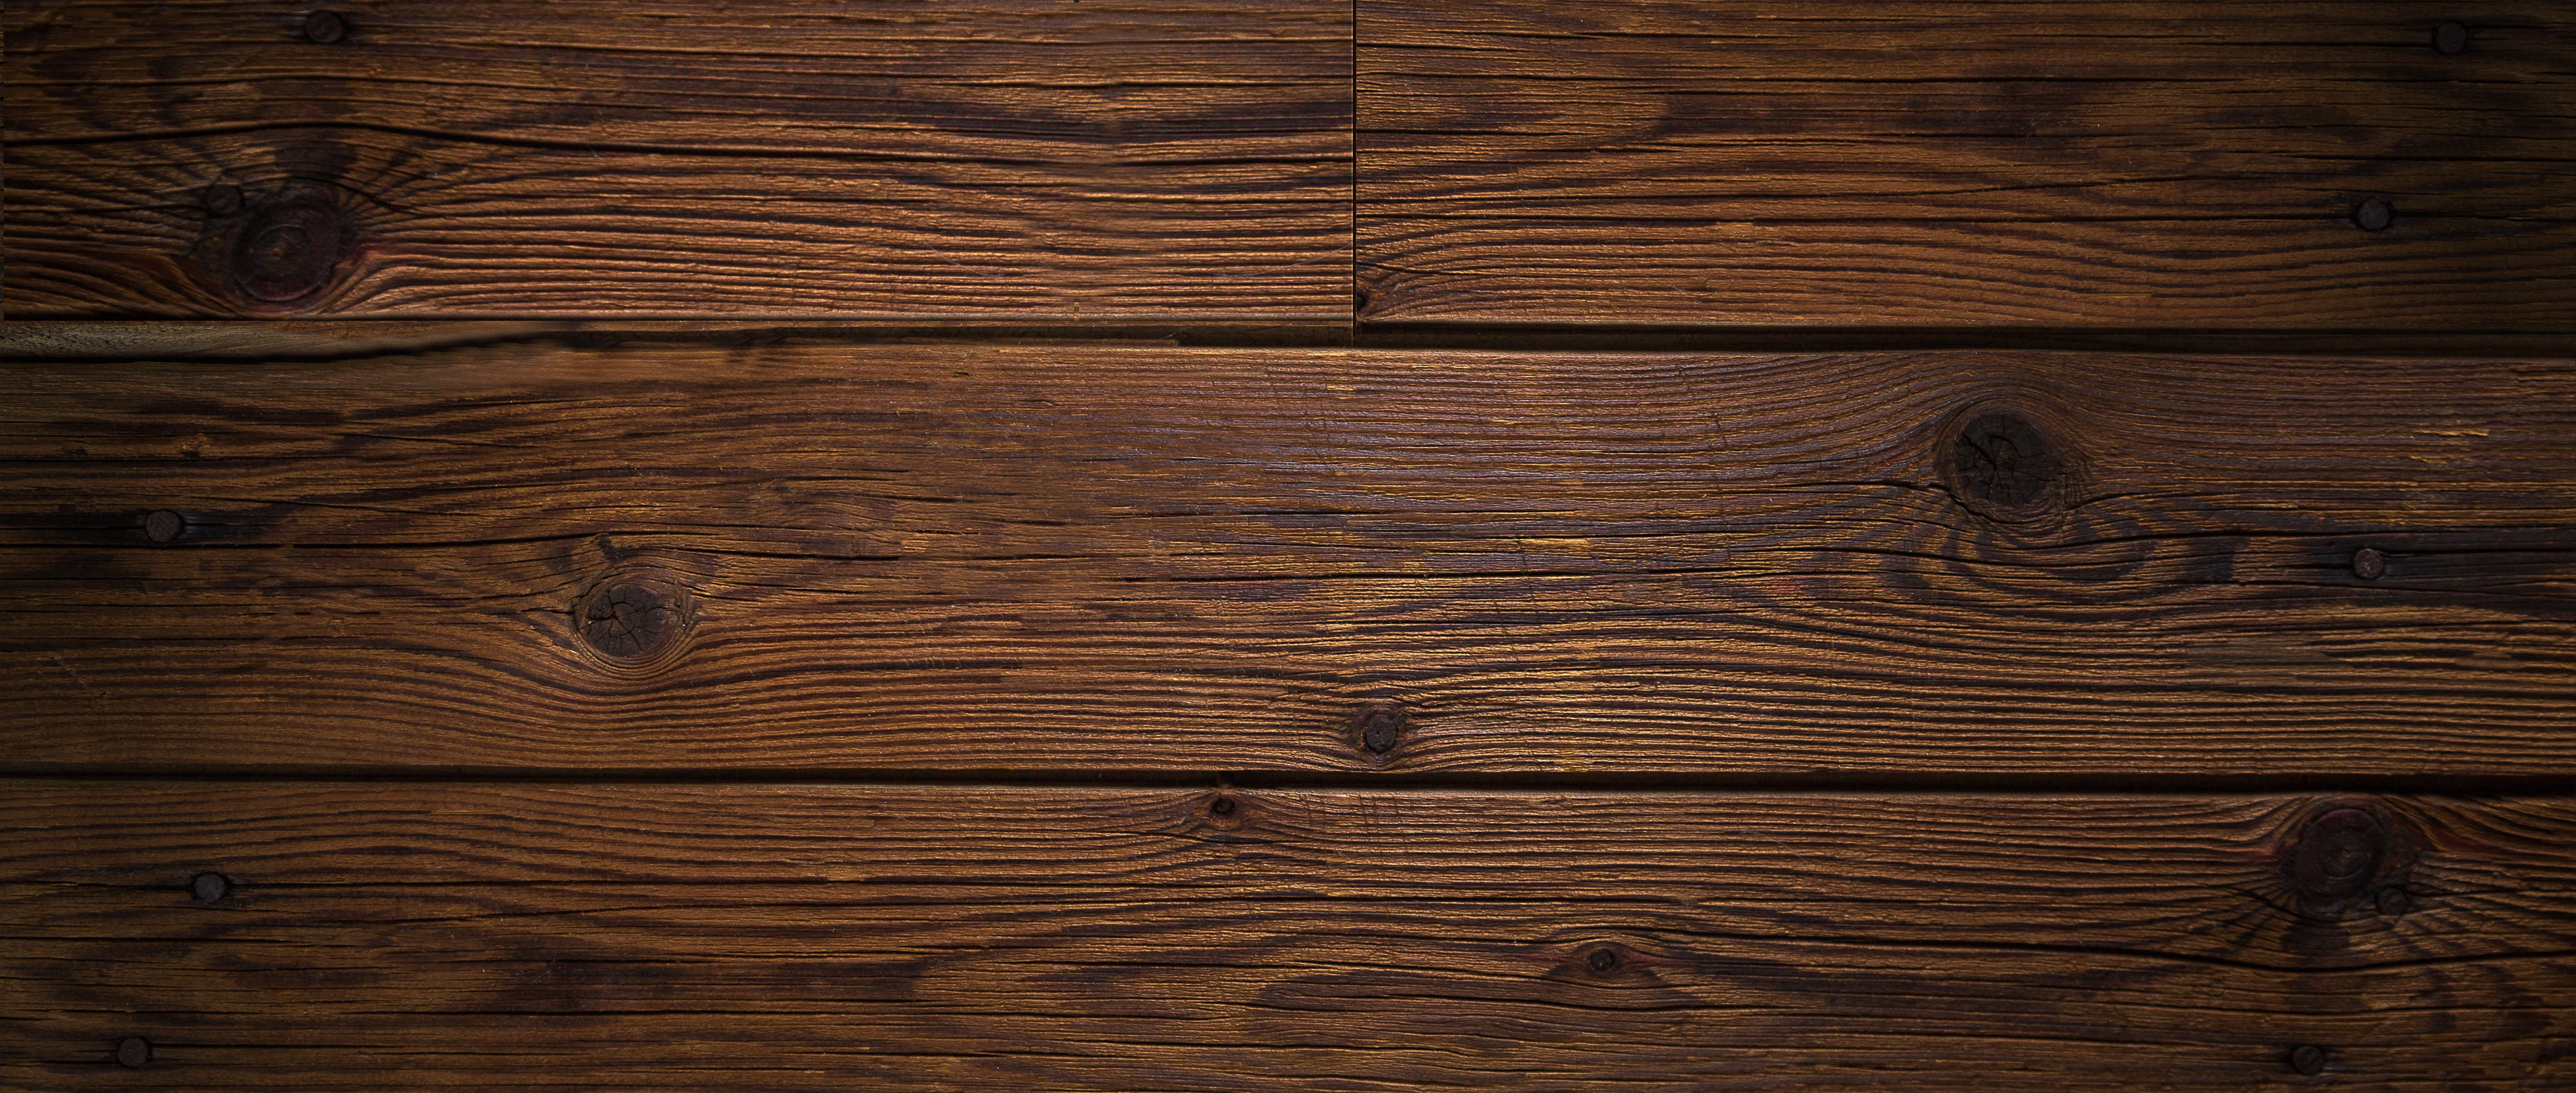 Free stock photo of wood, dark, construction, texture